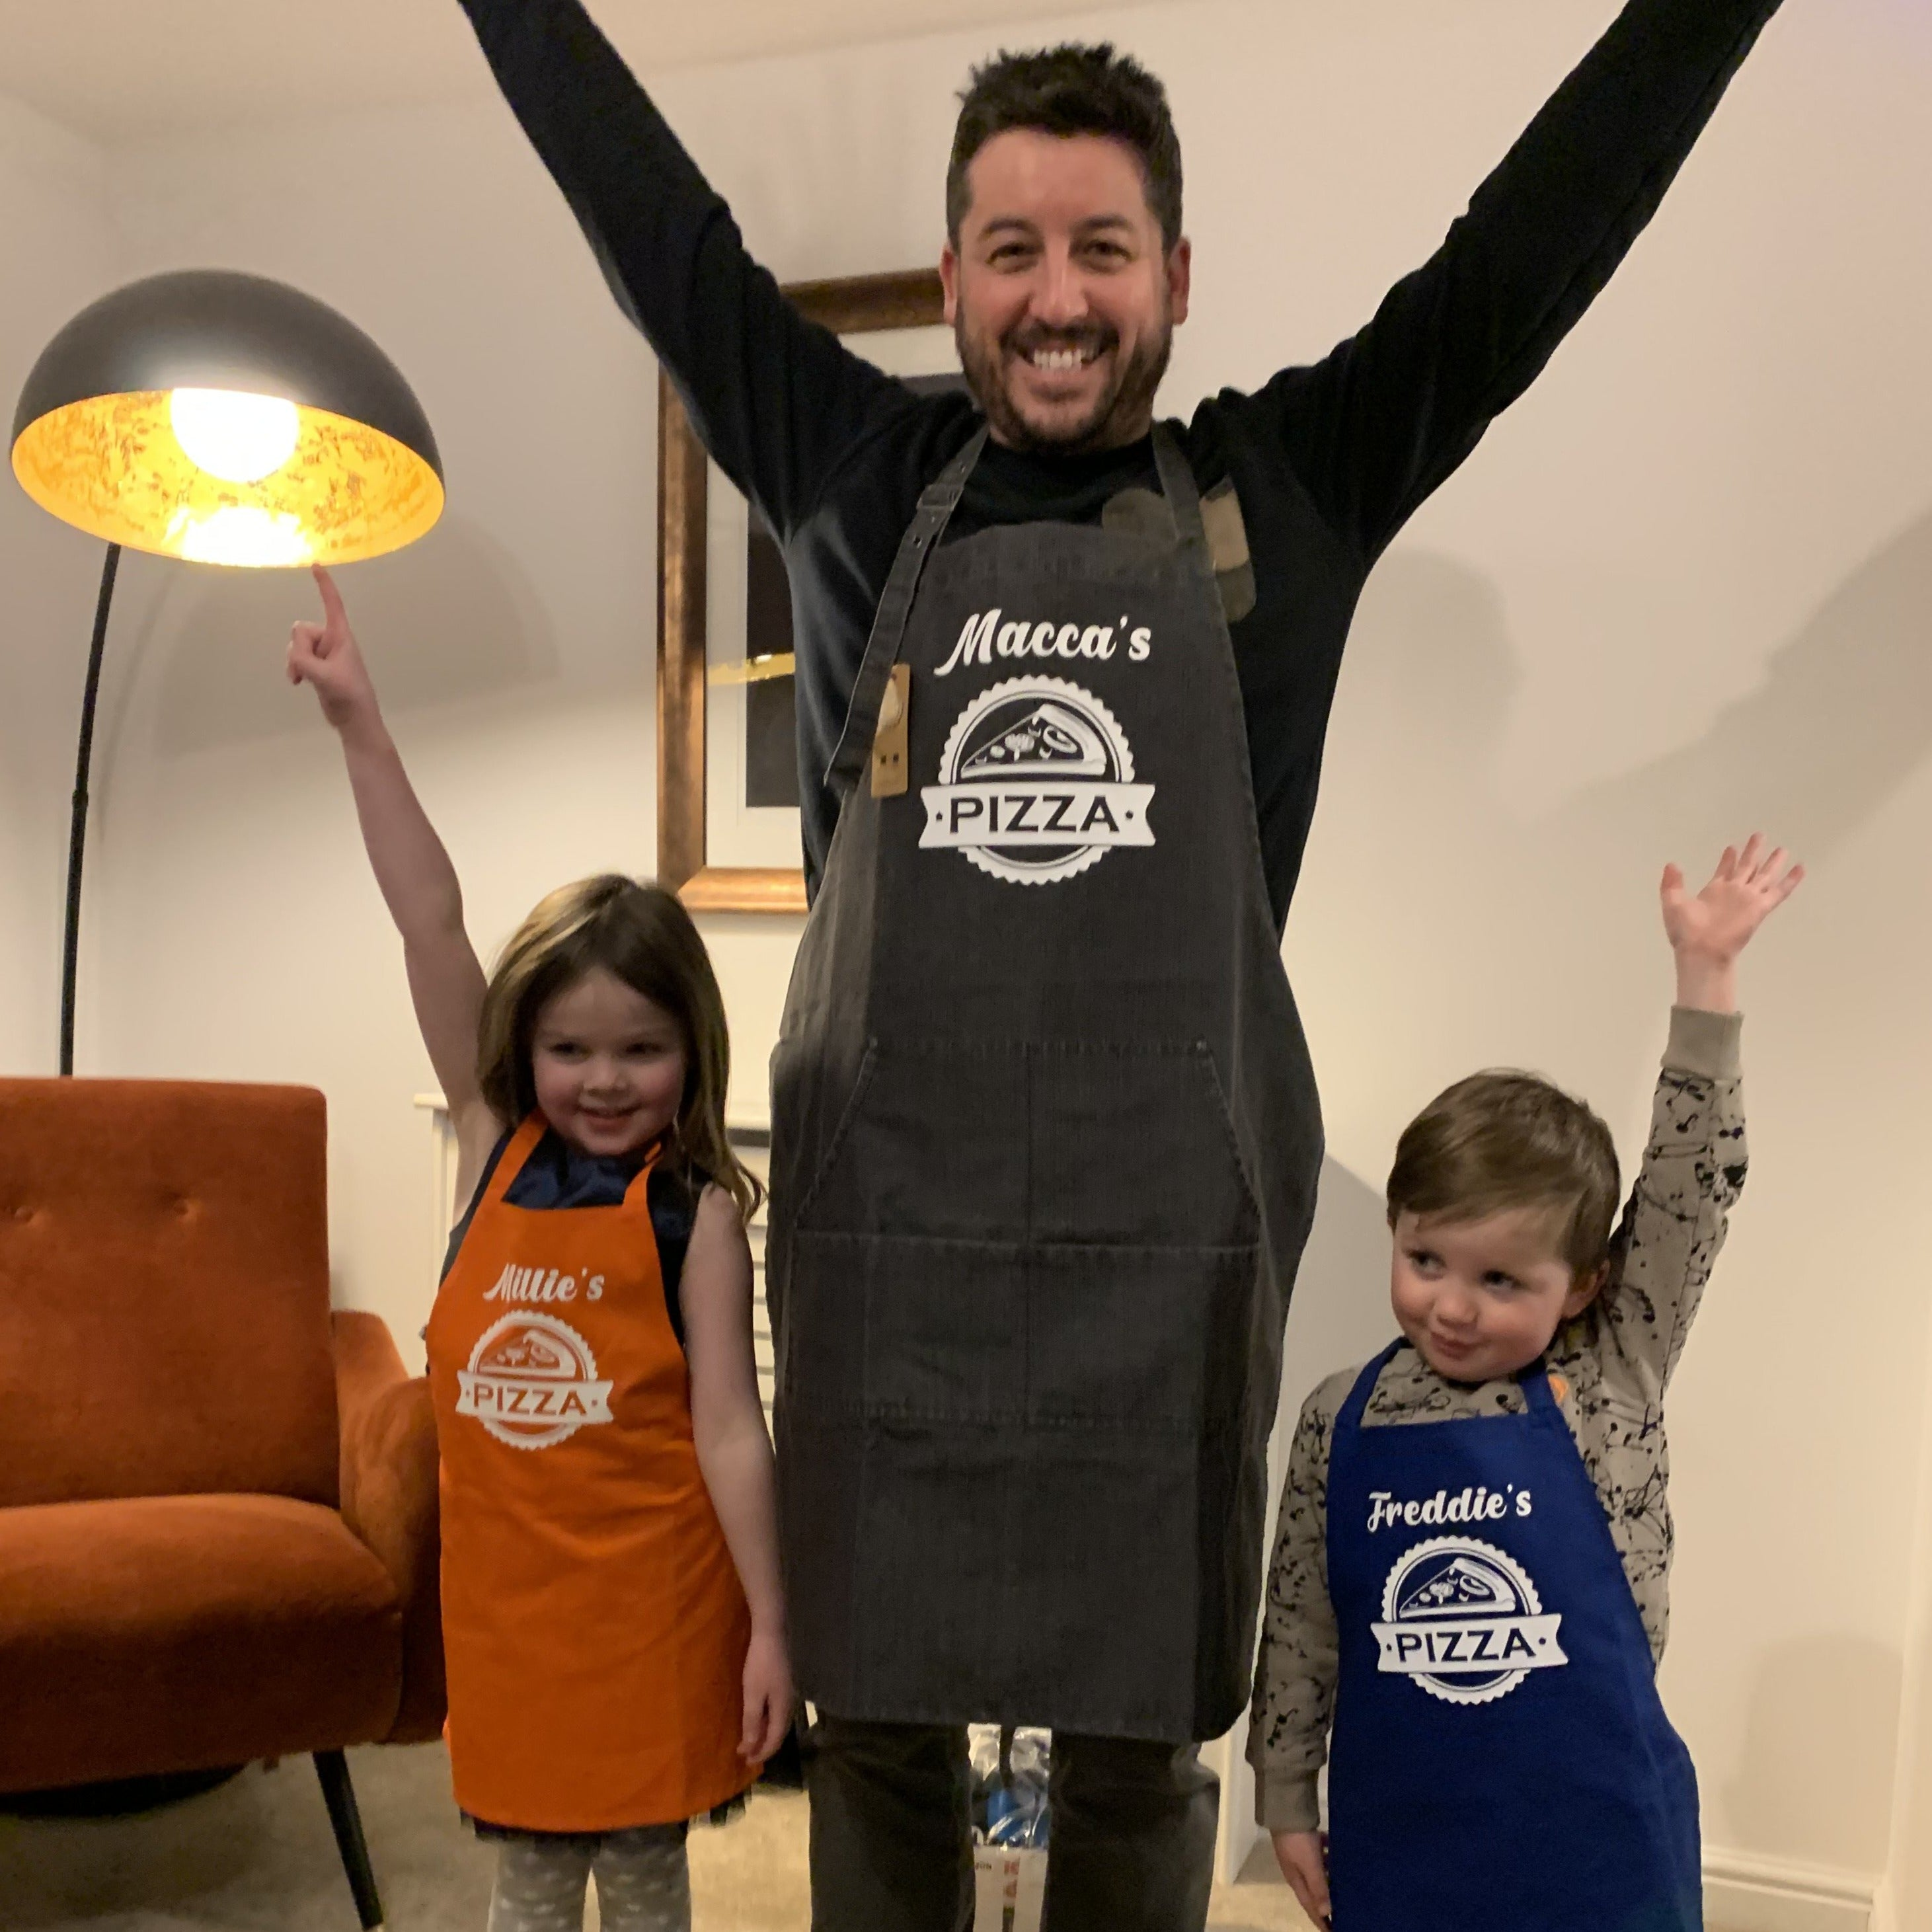 personalised aprons, Protective Aprons - Image 2